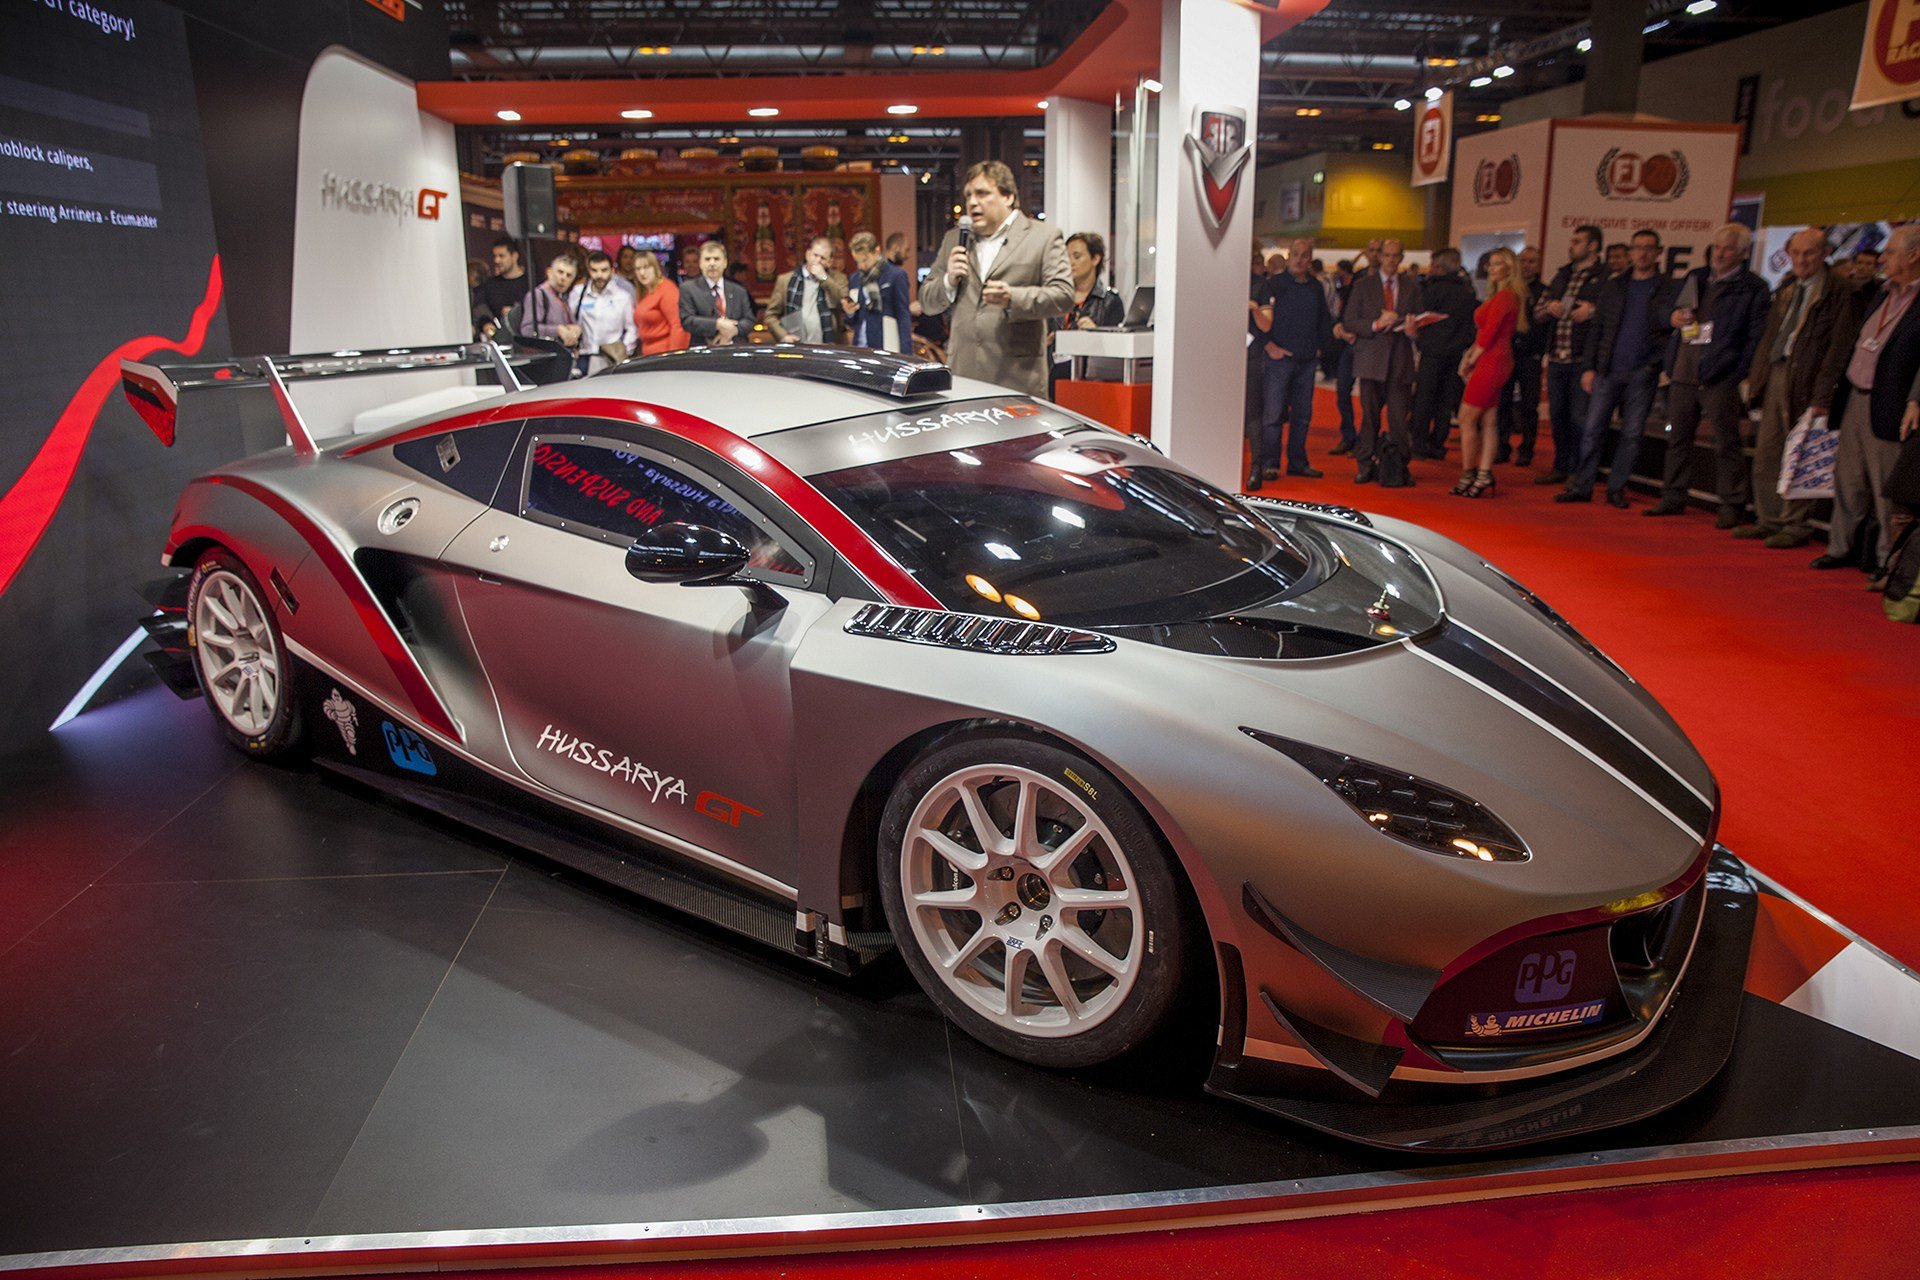 New 2016 Arrinera Hussarya Gt Review — The First Ever Polish On This Month